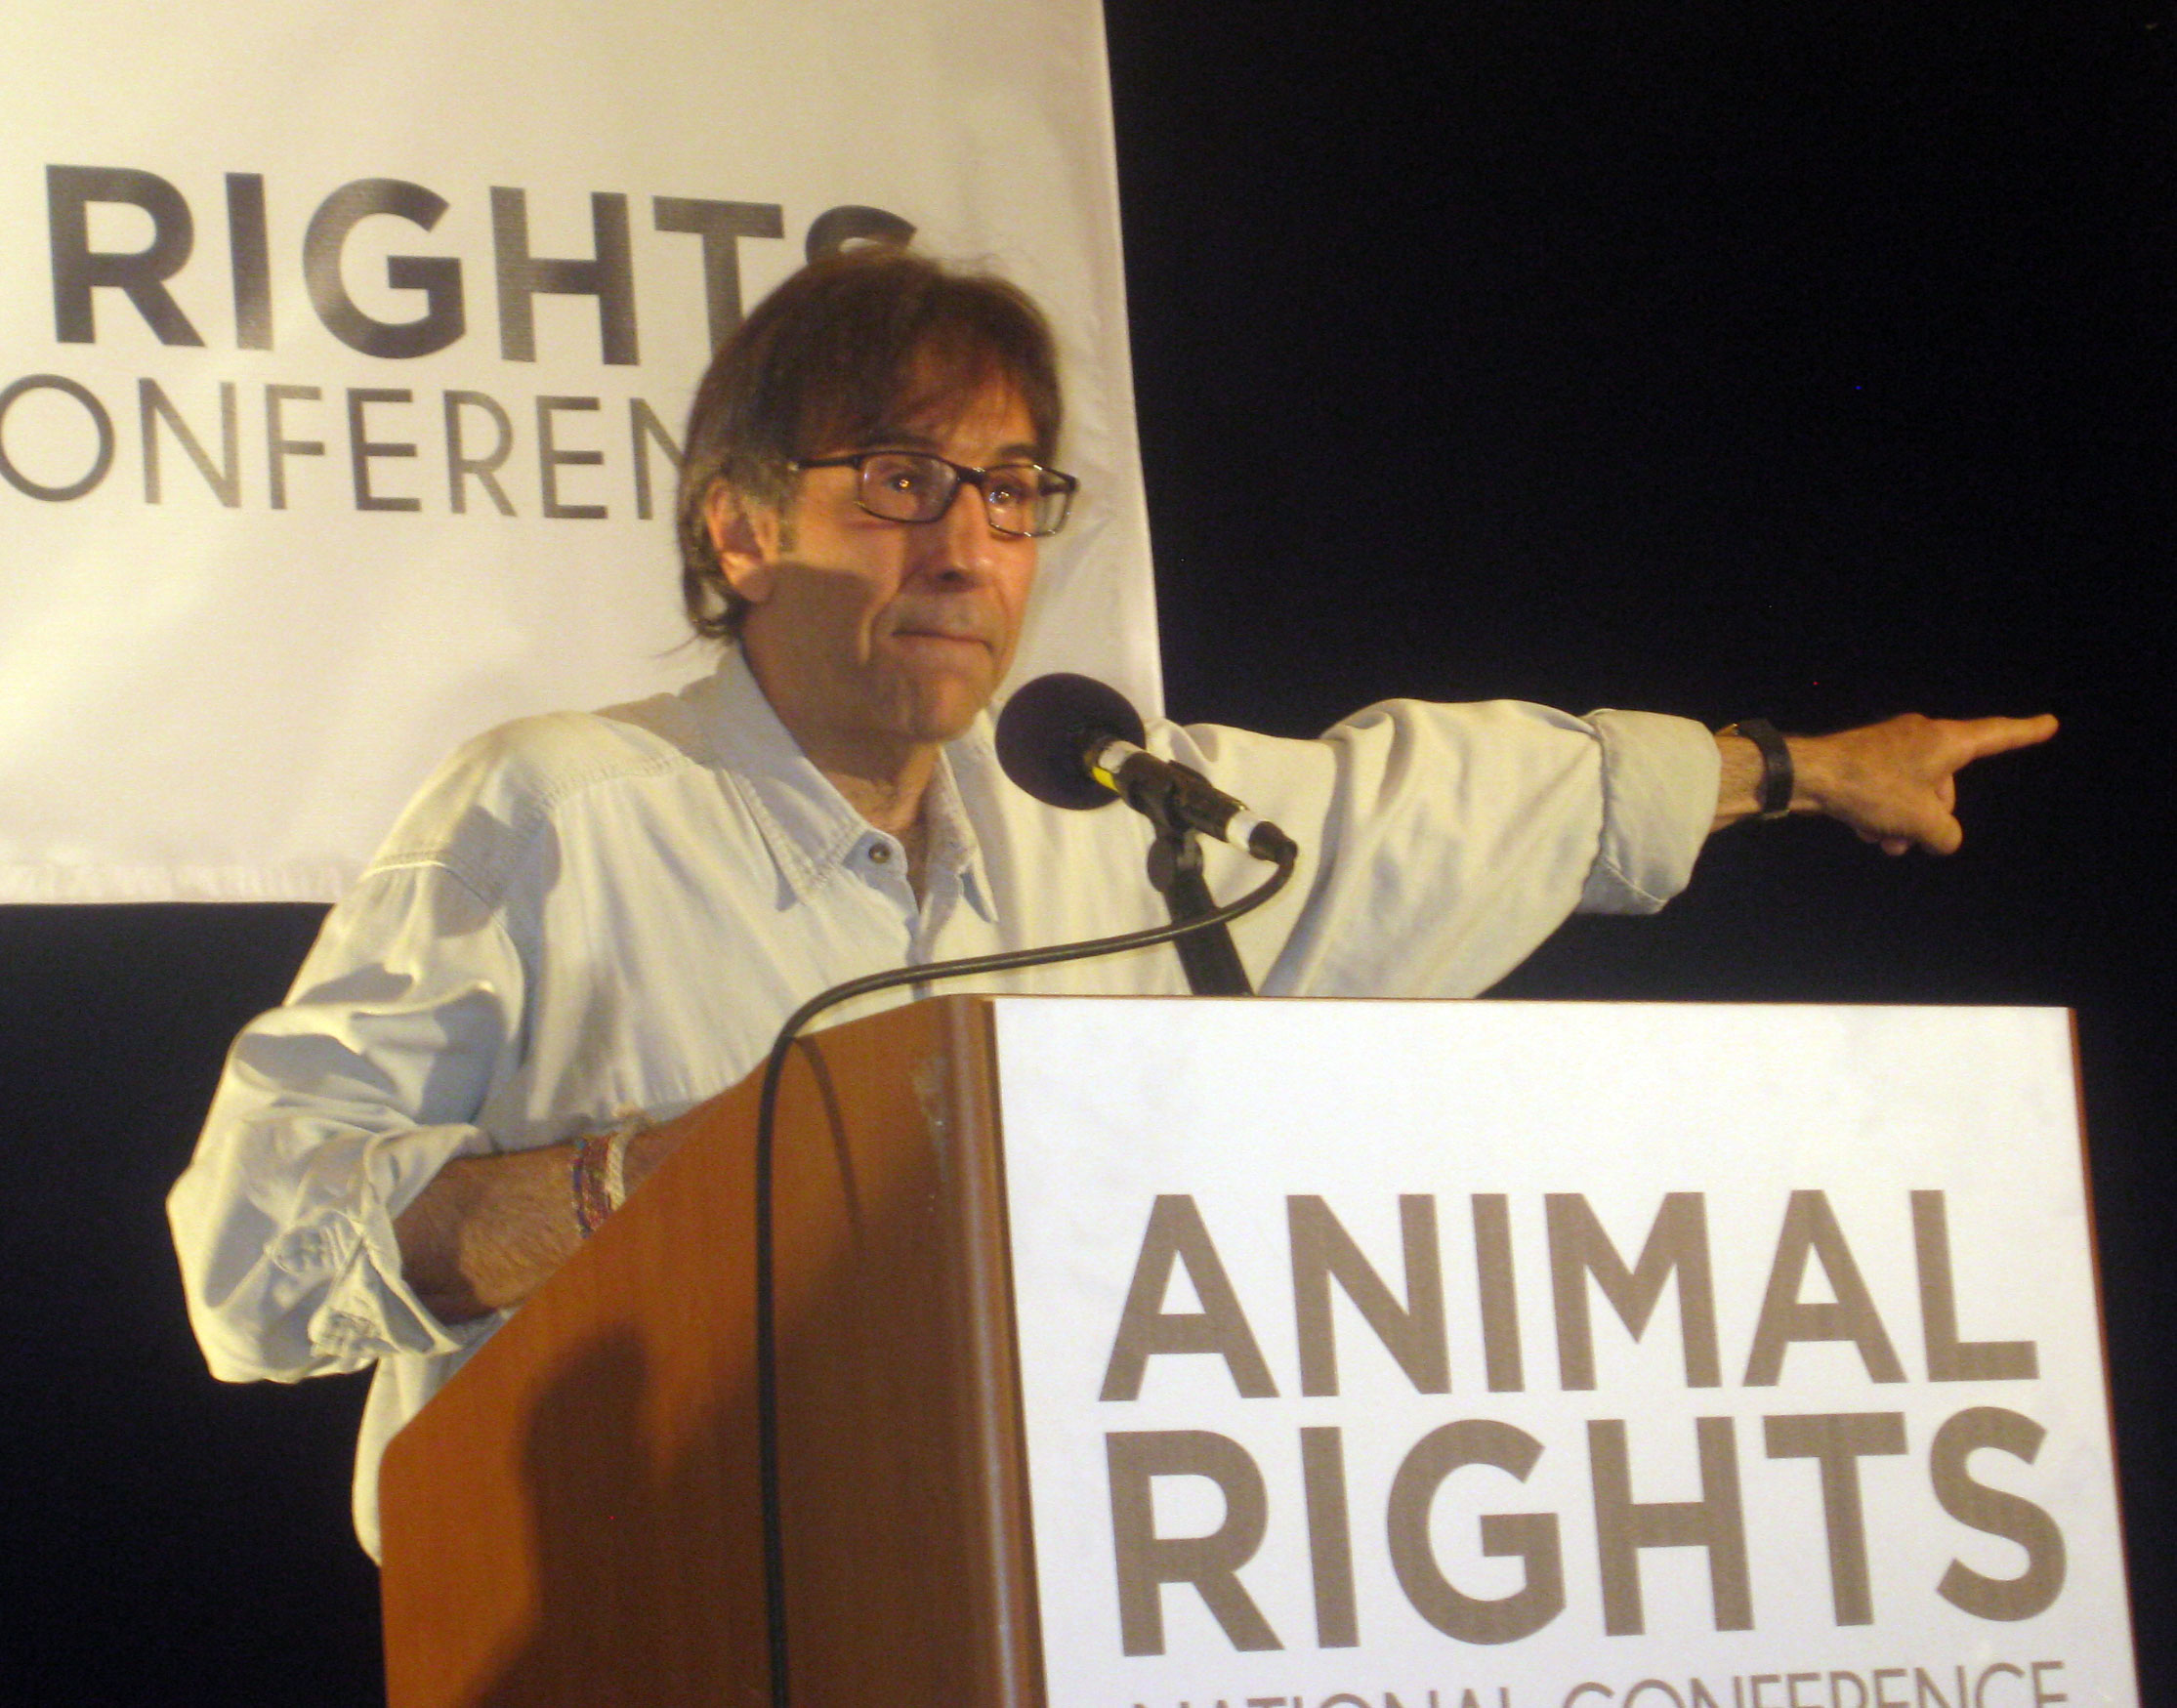 argument for animal rights Here is an article with some ideas why animal rights should matter, what their considering results in and the arguments supporting animal rights.